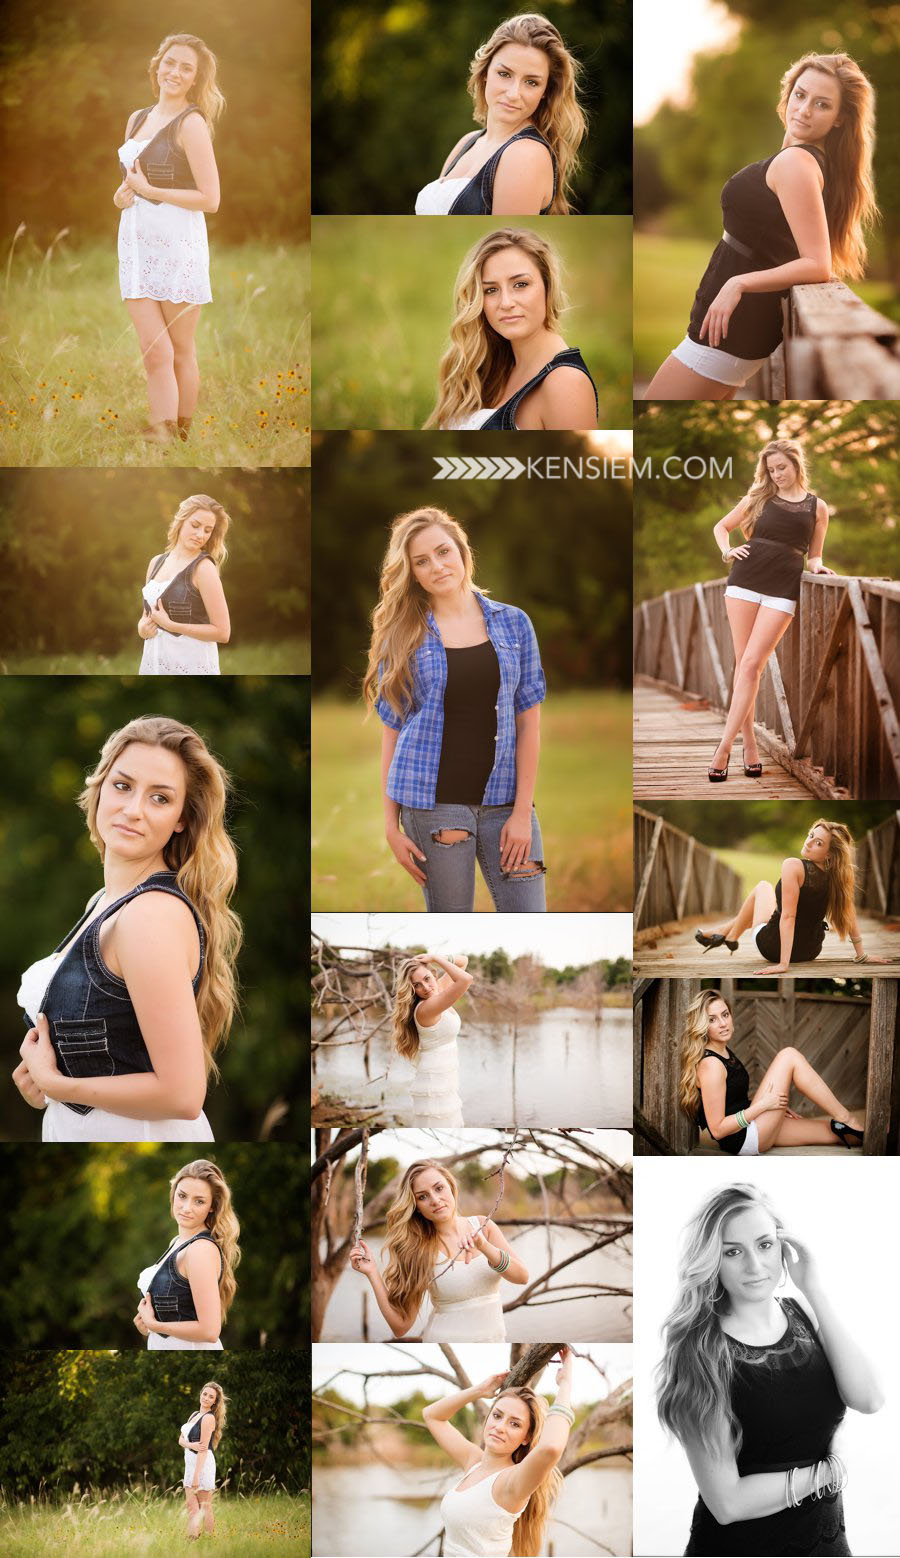 Winchester Virginia Senior Photography. Senior Girl Poses. Outdoor senior portraits of a gorgeous girl. www.kensiem.com | Winchester Virginia Photographer